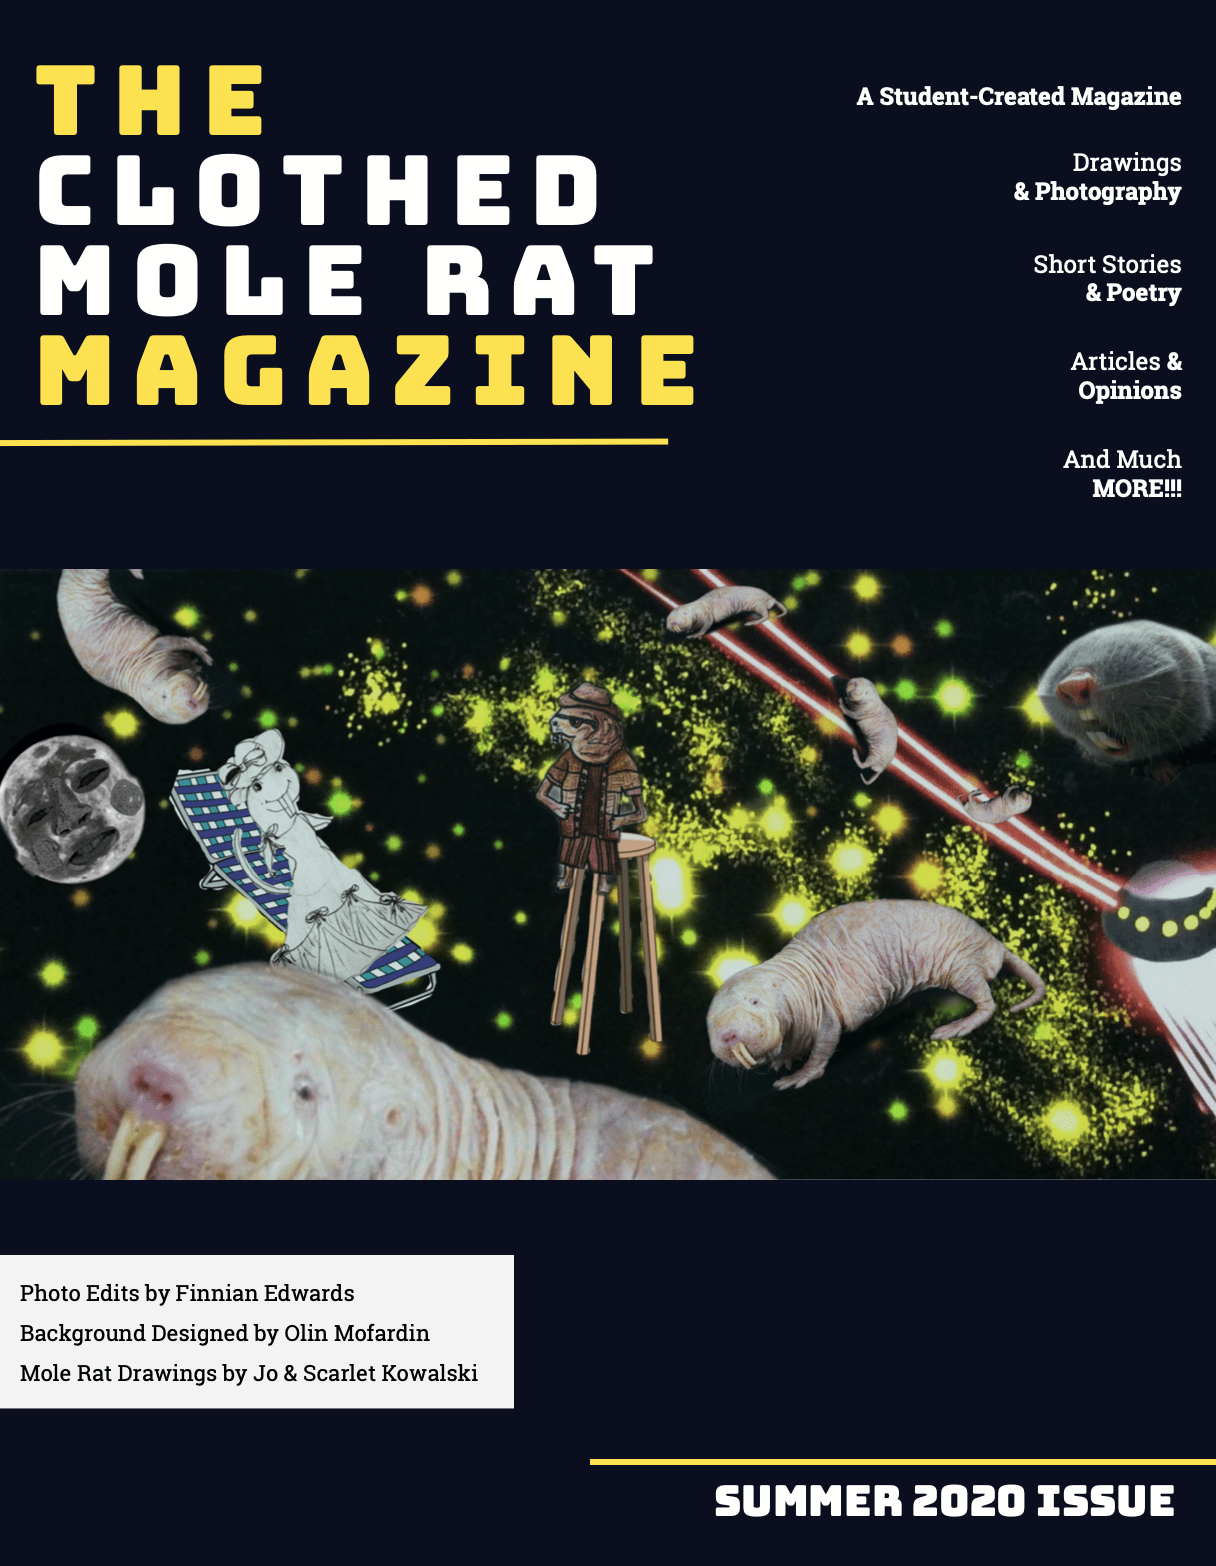 The Clothed Mole Rat Summer 2020 Issue